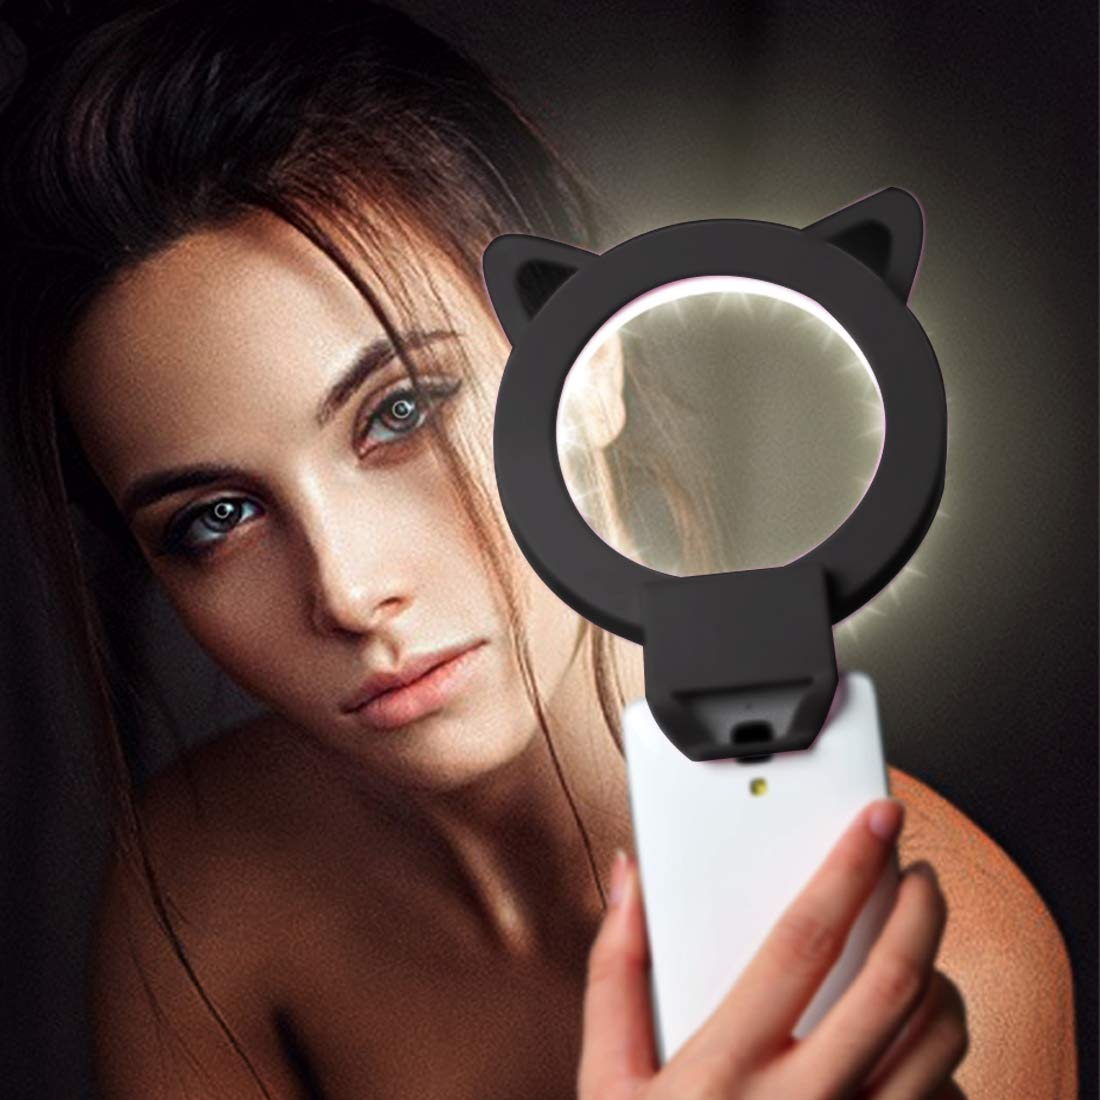 LED Light Live Self-Timer Ring Flash Fill Light RK13 Anchor Live Broadcast Cute Artifact Cat Ears Shape 3 Levels of Brightness Beauty Fill Light with 36 LED Light, for iPhone, Galaxy, Huawei, Xiaomi,